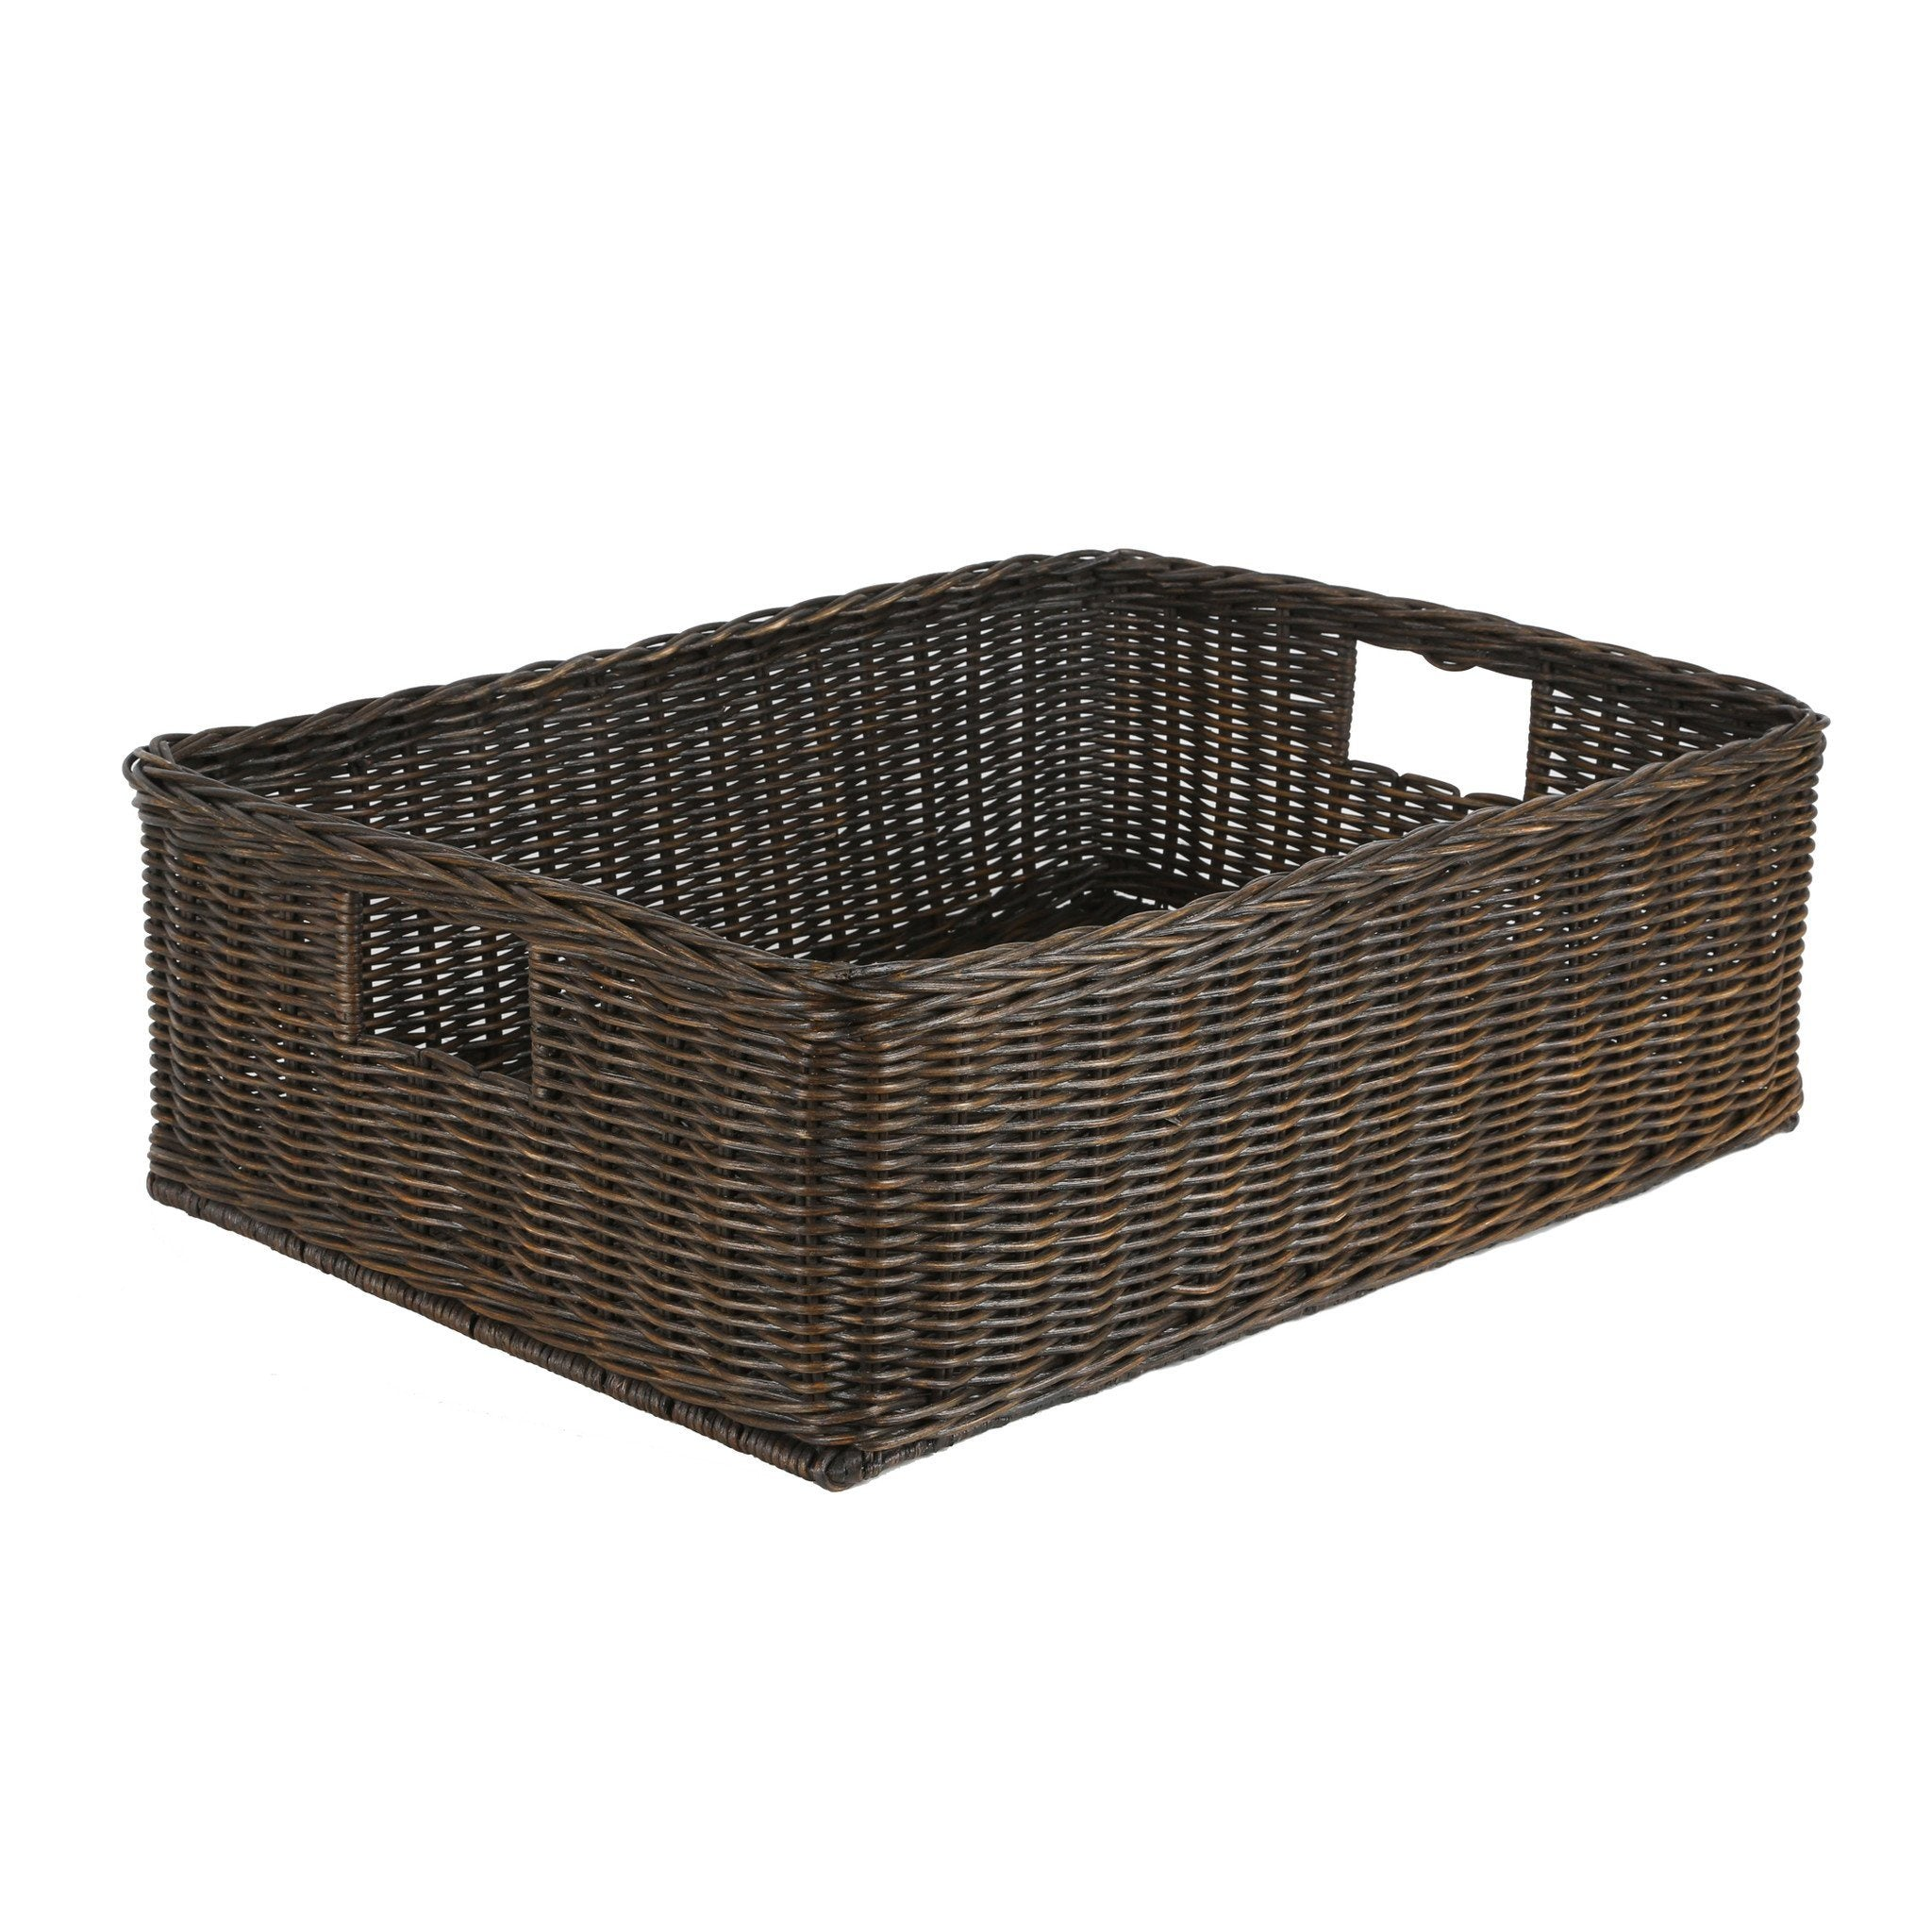 Home underbed storage baskets wicker underbed storage basket -  The Basket Lady Underbed Wicker Storage Basket In Antique Walnut Brown Size Xl From The Basket